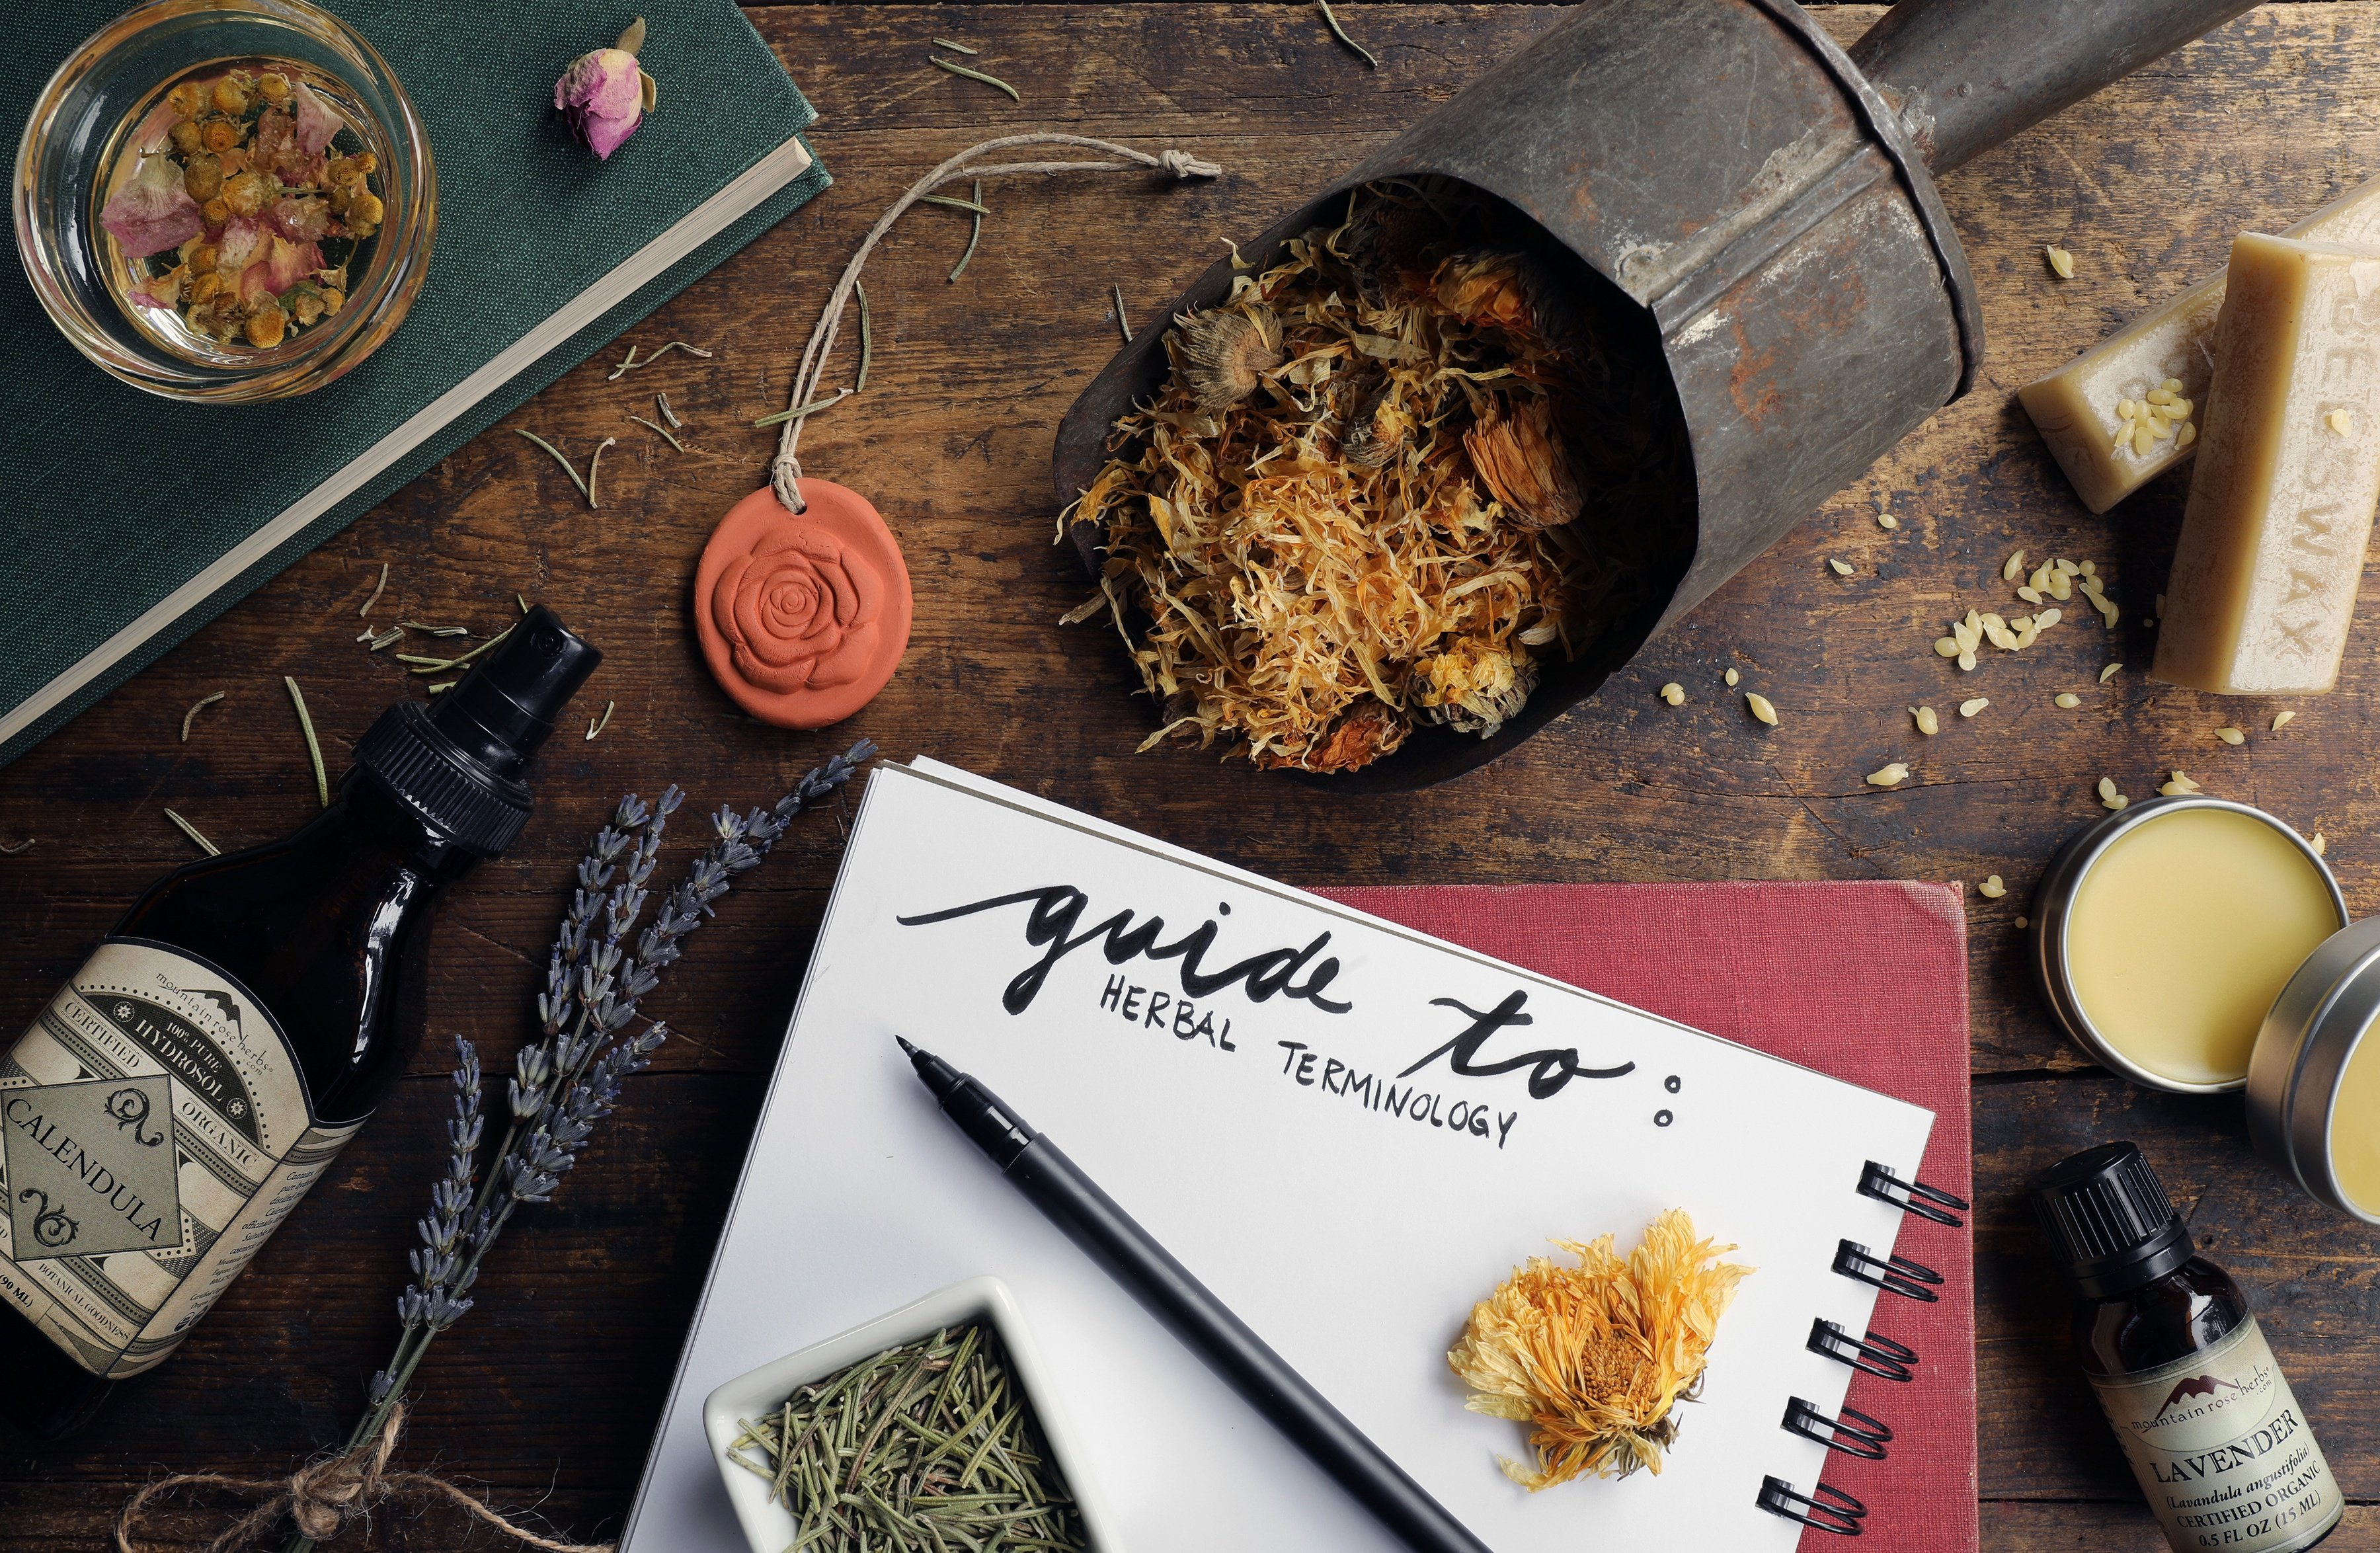 Notebook with pen and herbal intgredients and fresh herbs for learning herbal educatio